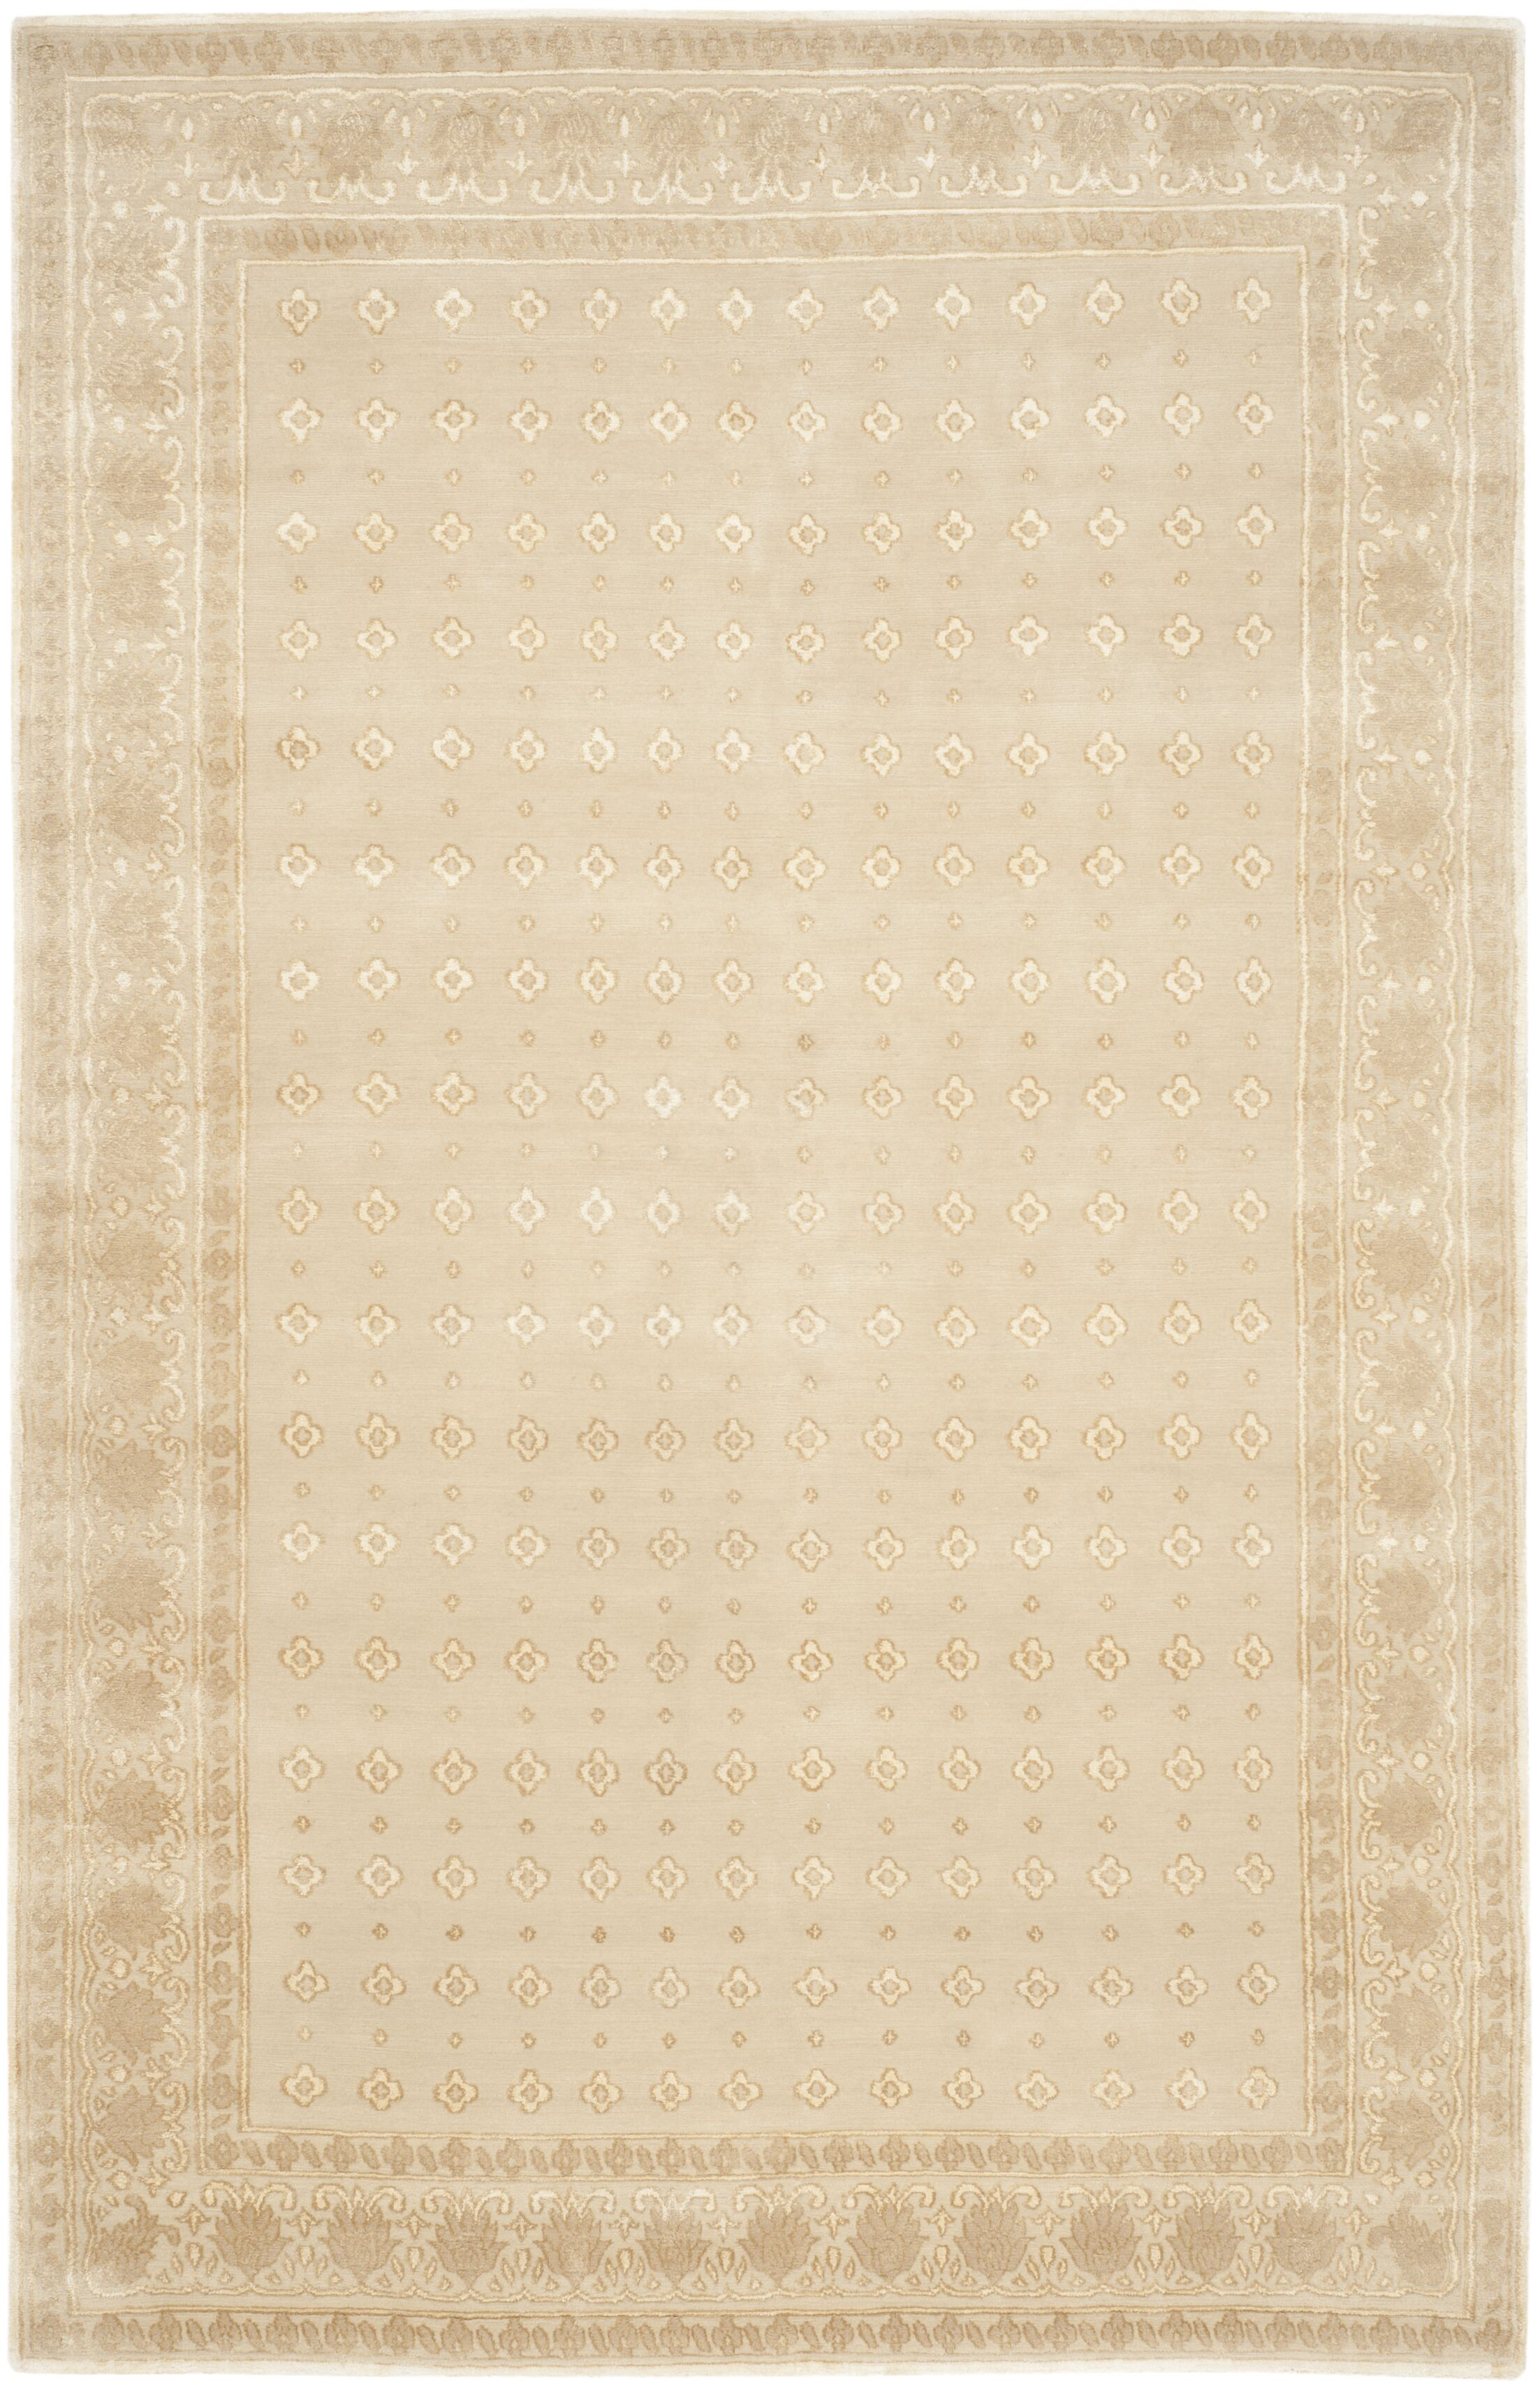 Berta Hand-Knotted Cream Area Rug Rug Size: 6' x 9'